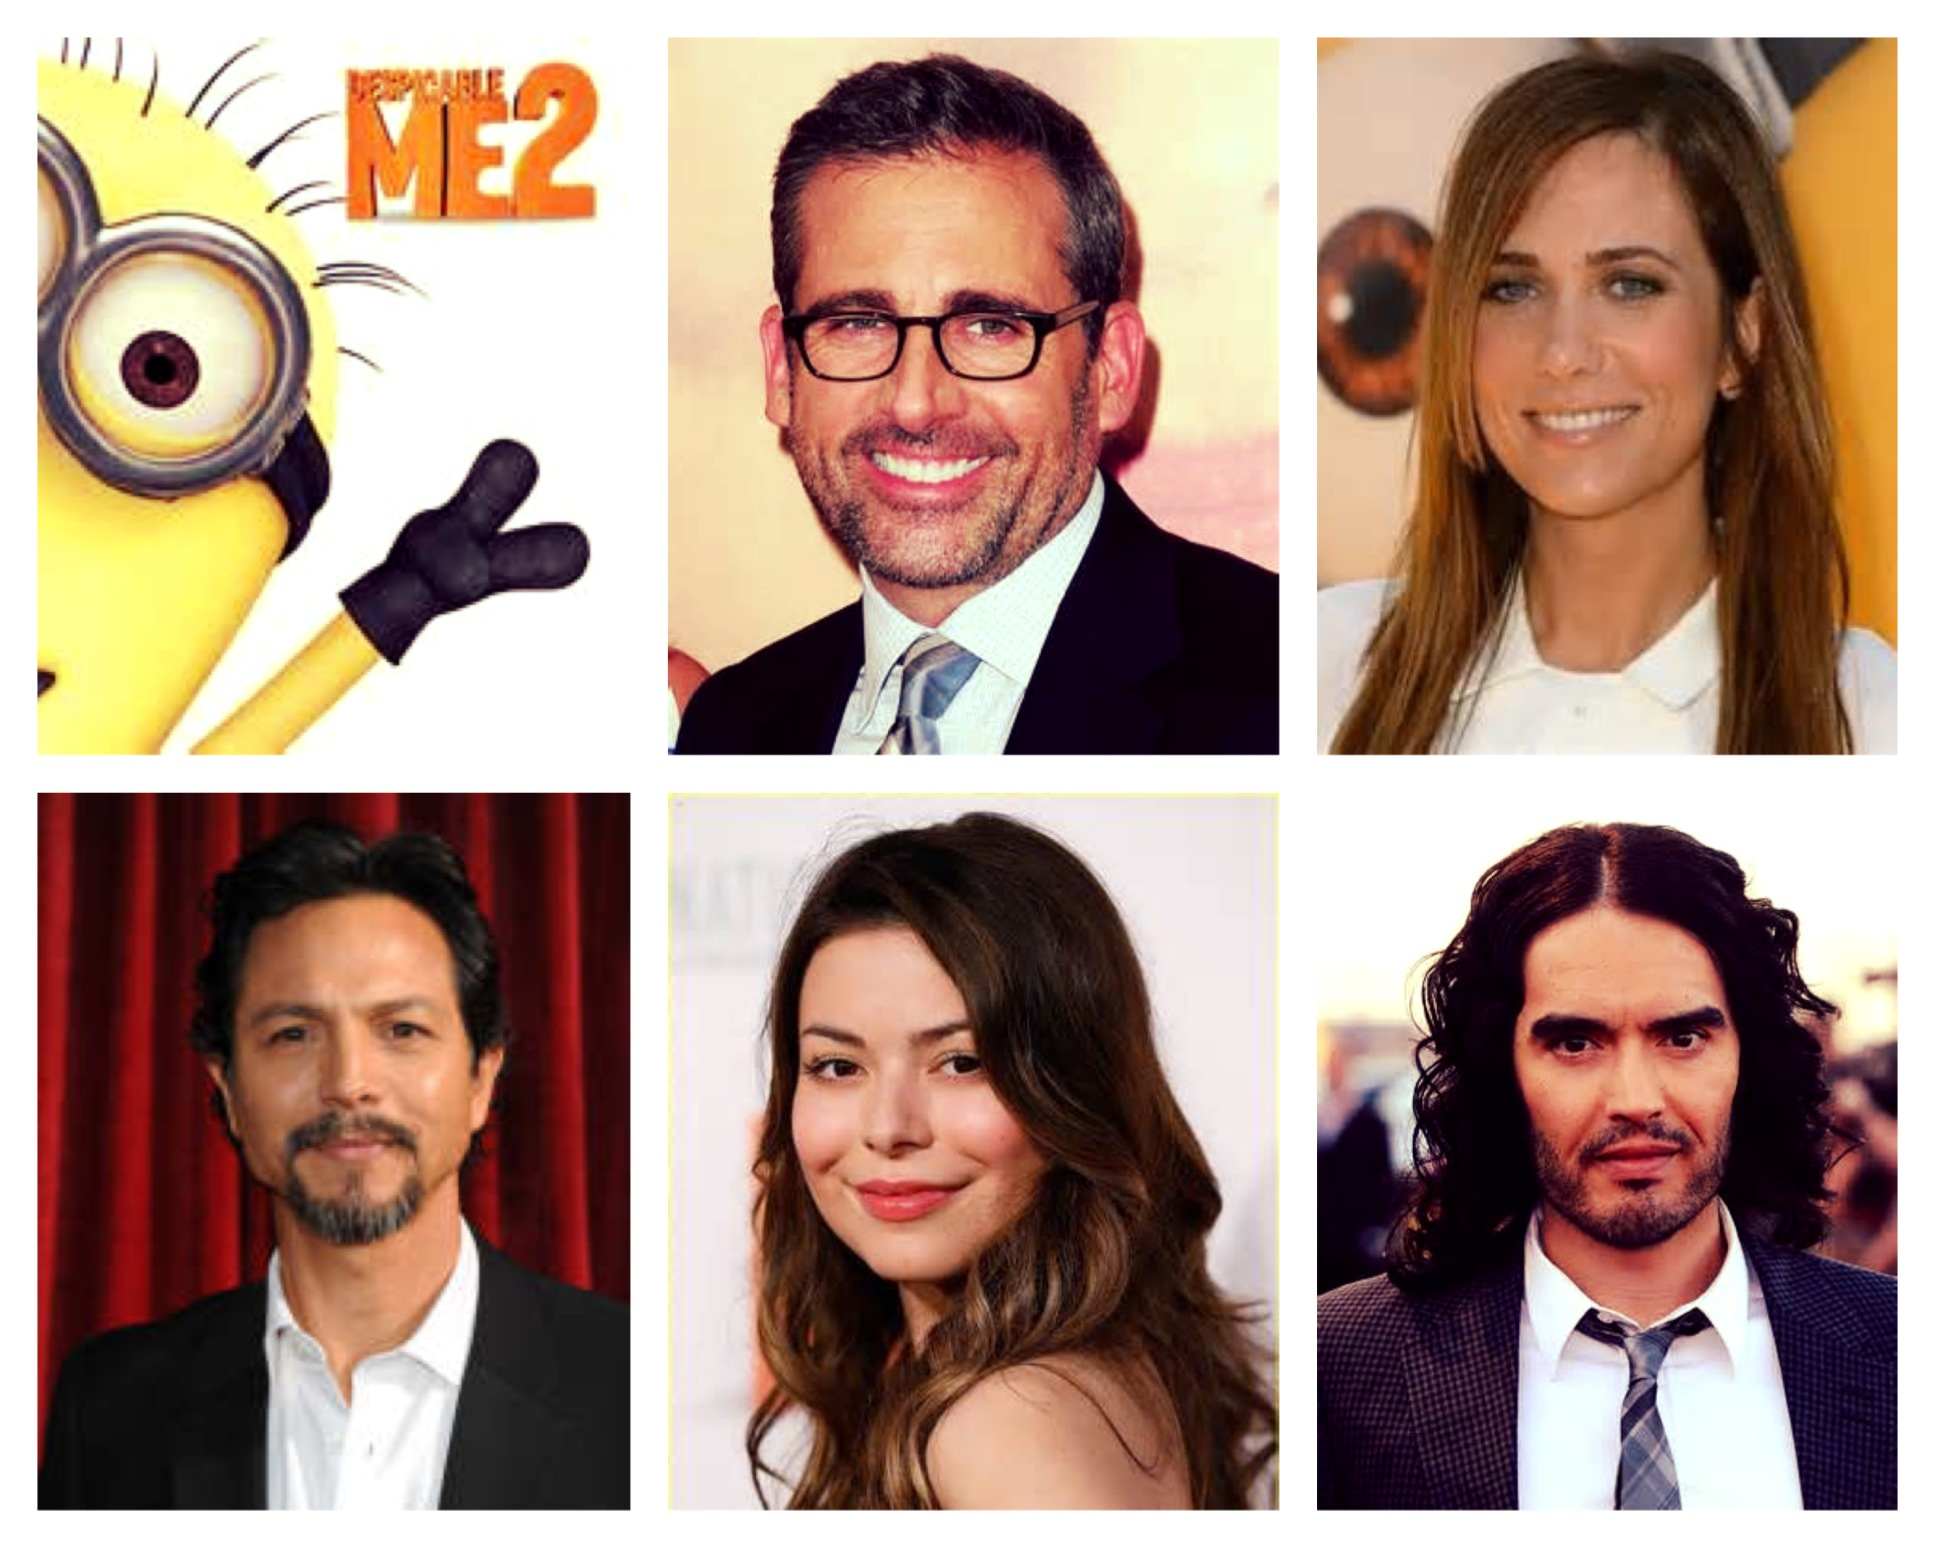 Elenco Despicable Me 2